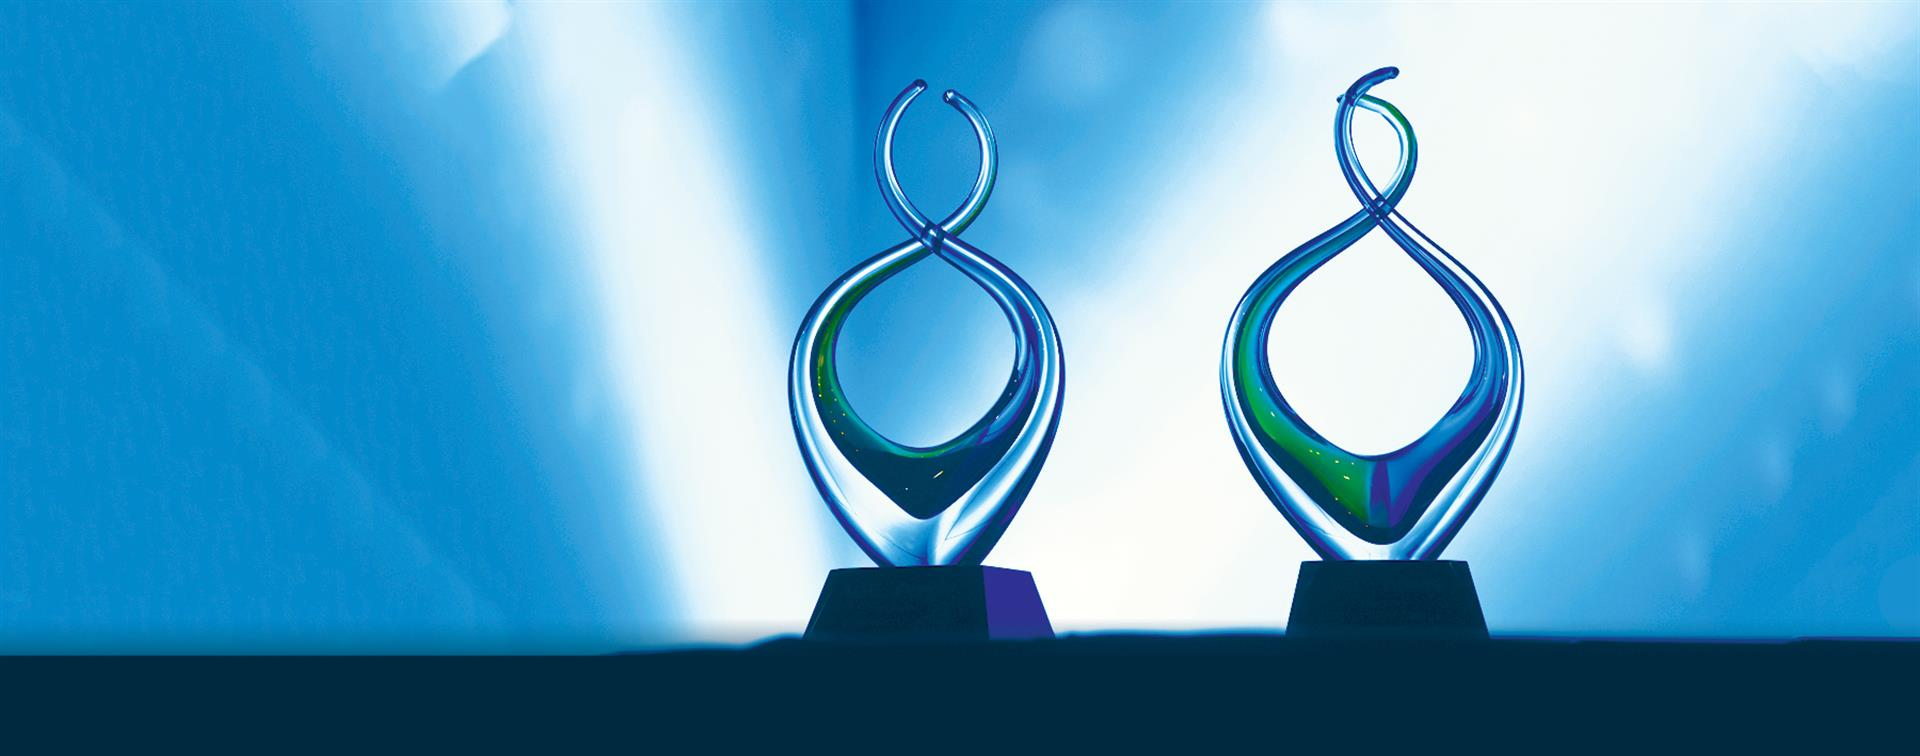 A picture of glass award sculptures on a table